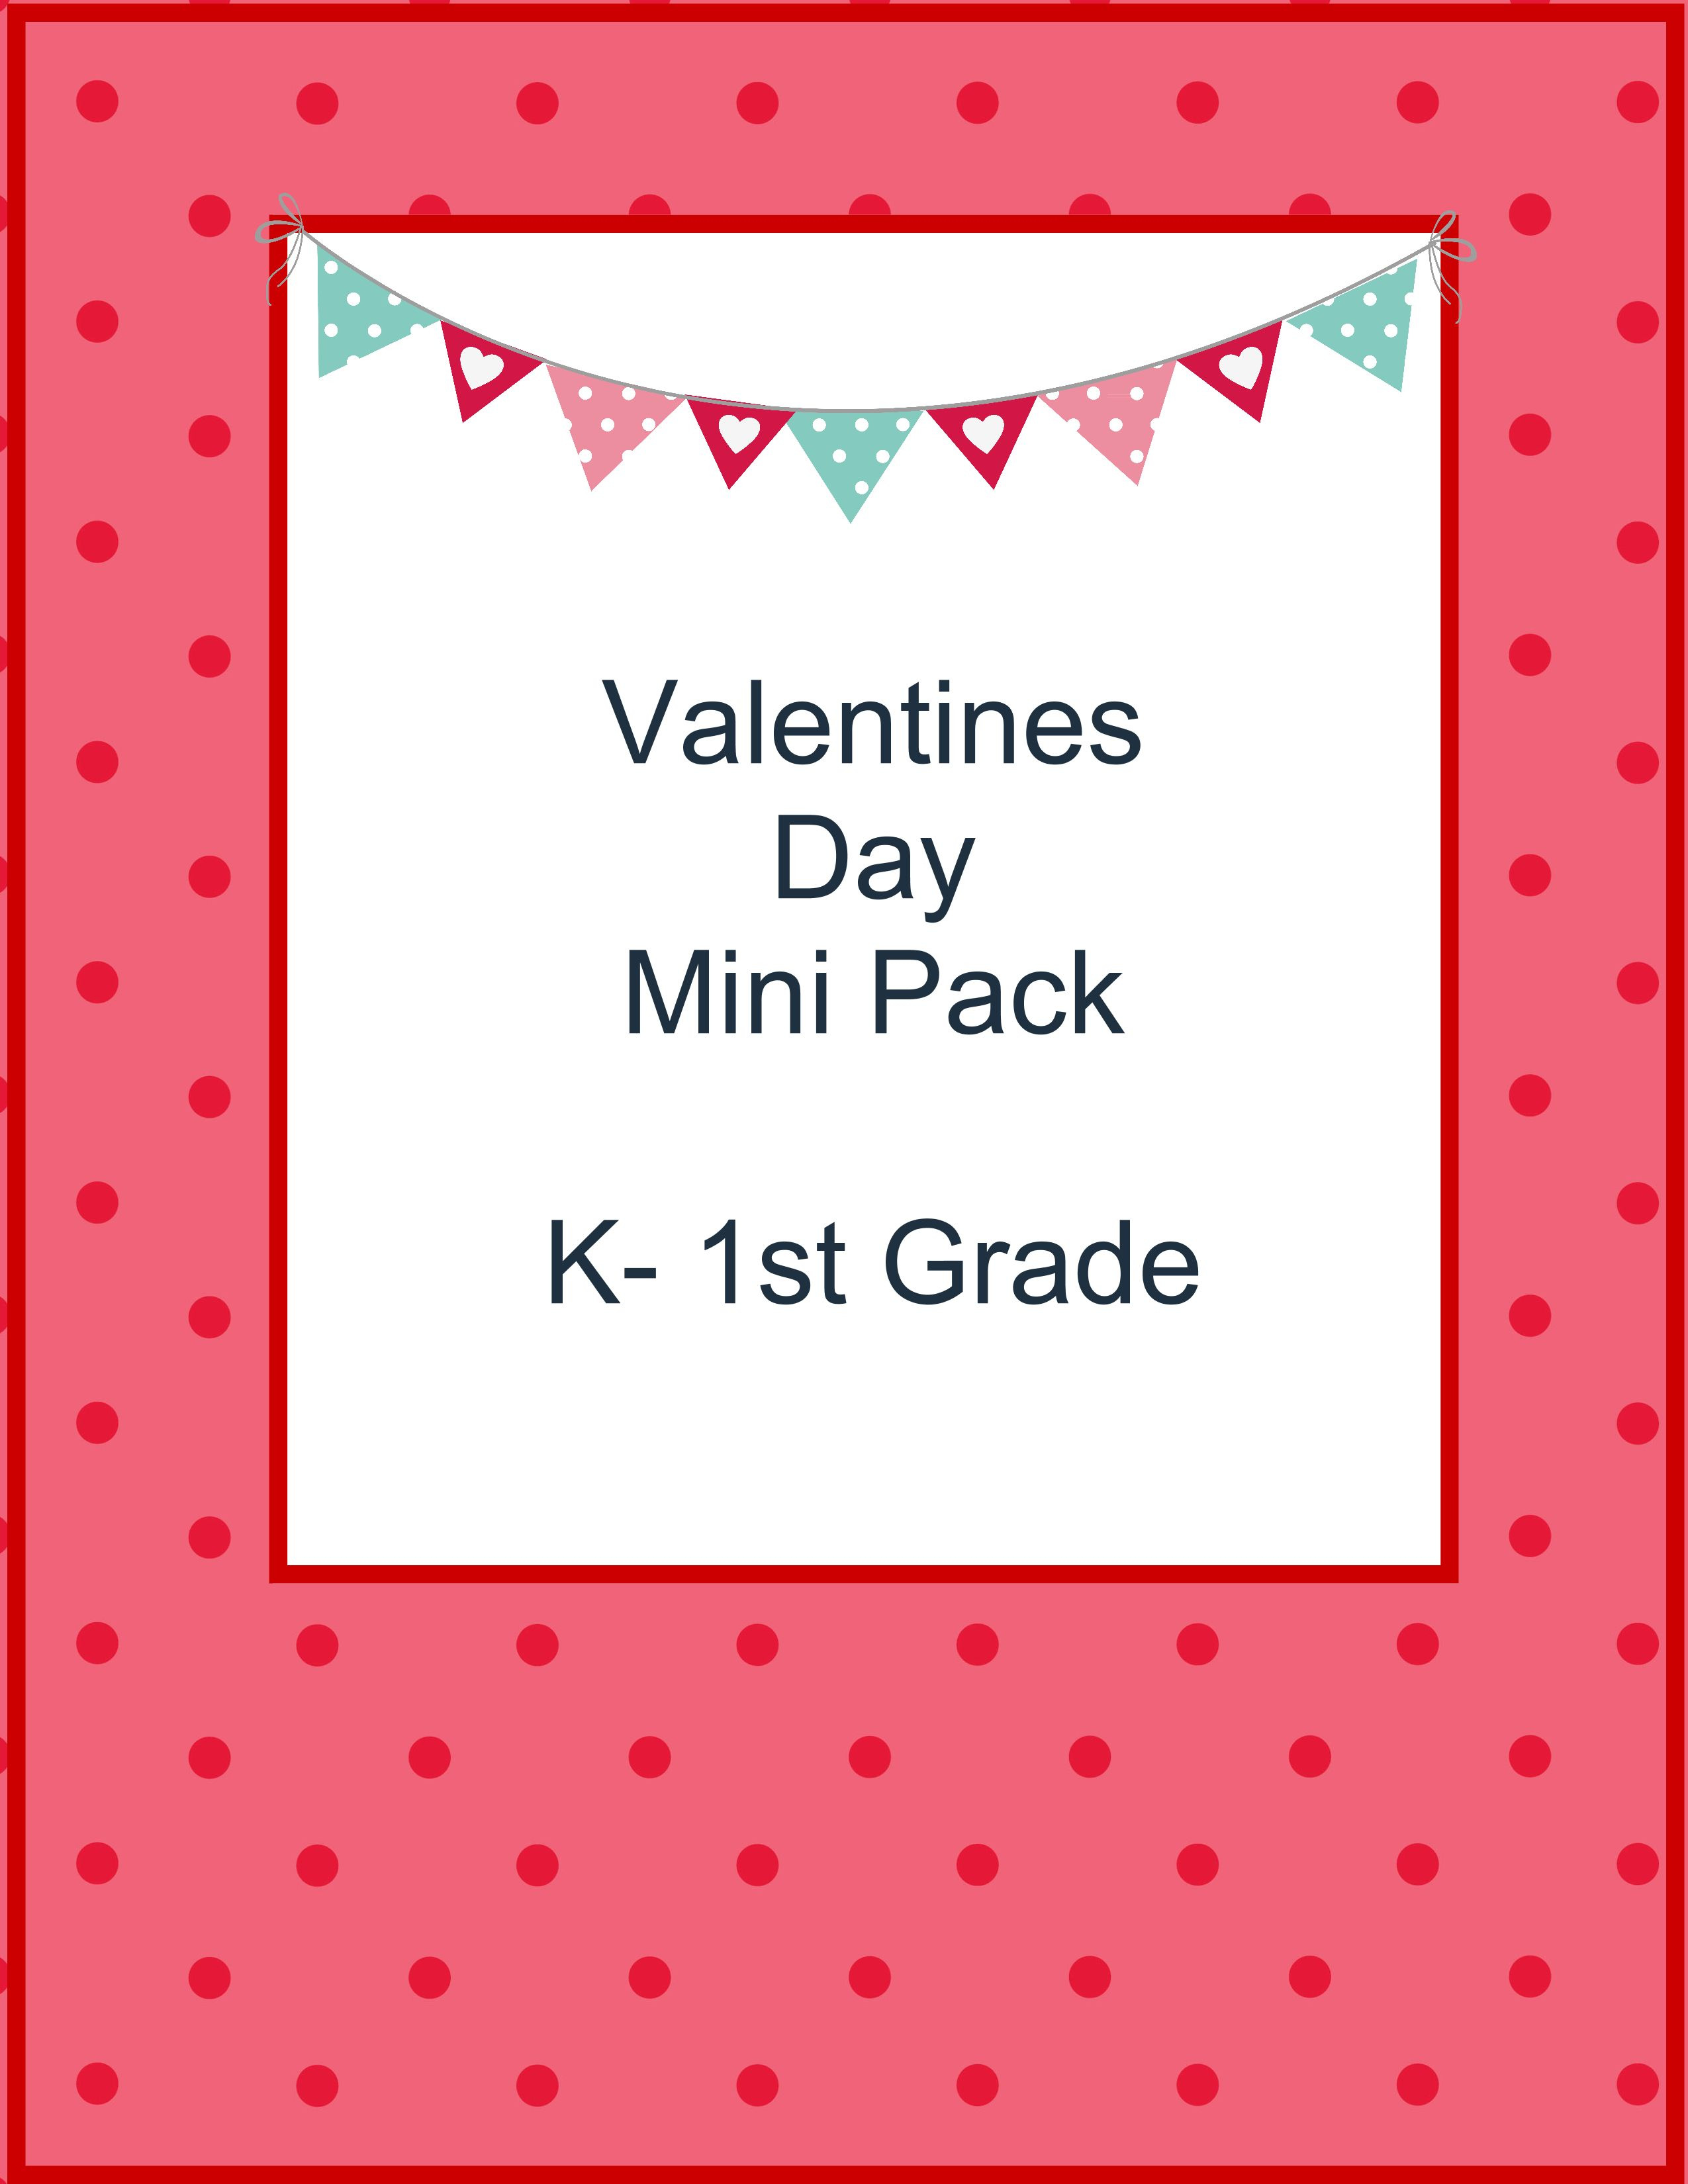 Valentines Day Mini Pack by The Relaxed Homeschool